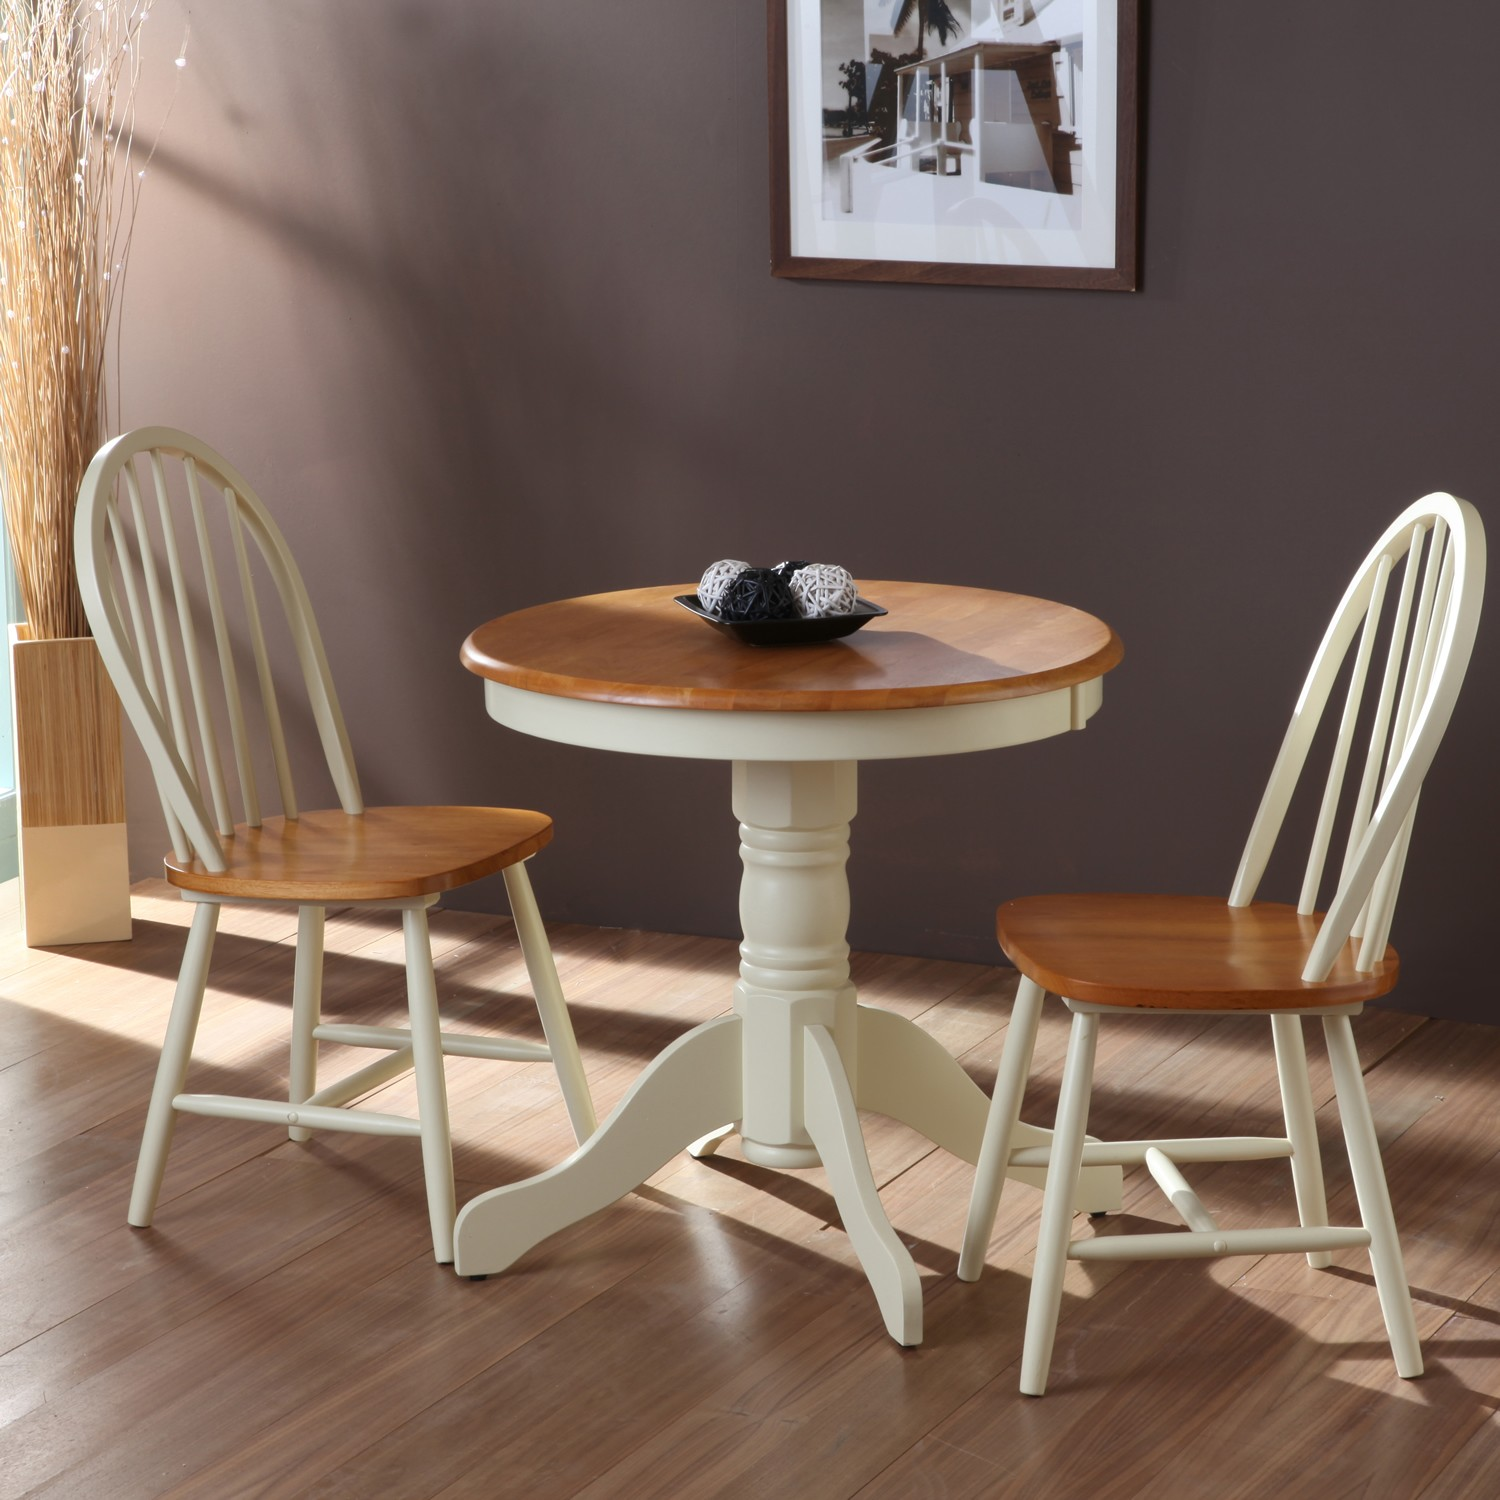 Kitchenette Table And Chair Sets: Beautiful White Round Kitchen Table And Chairs